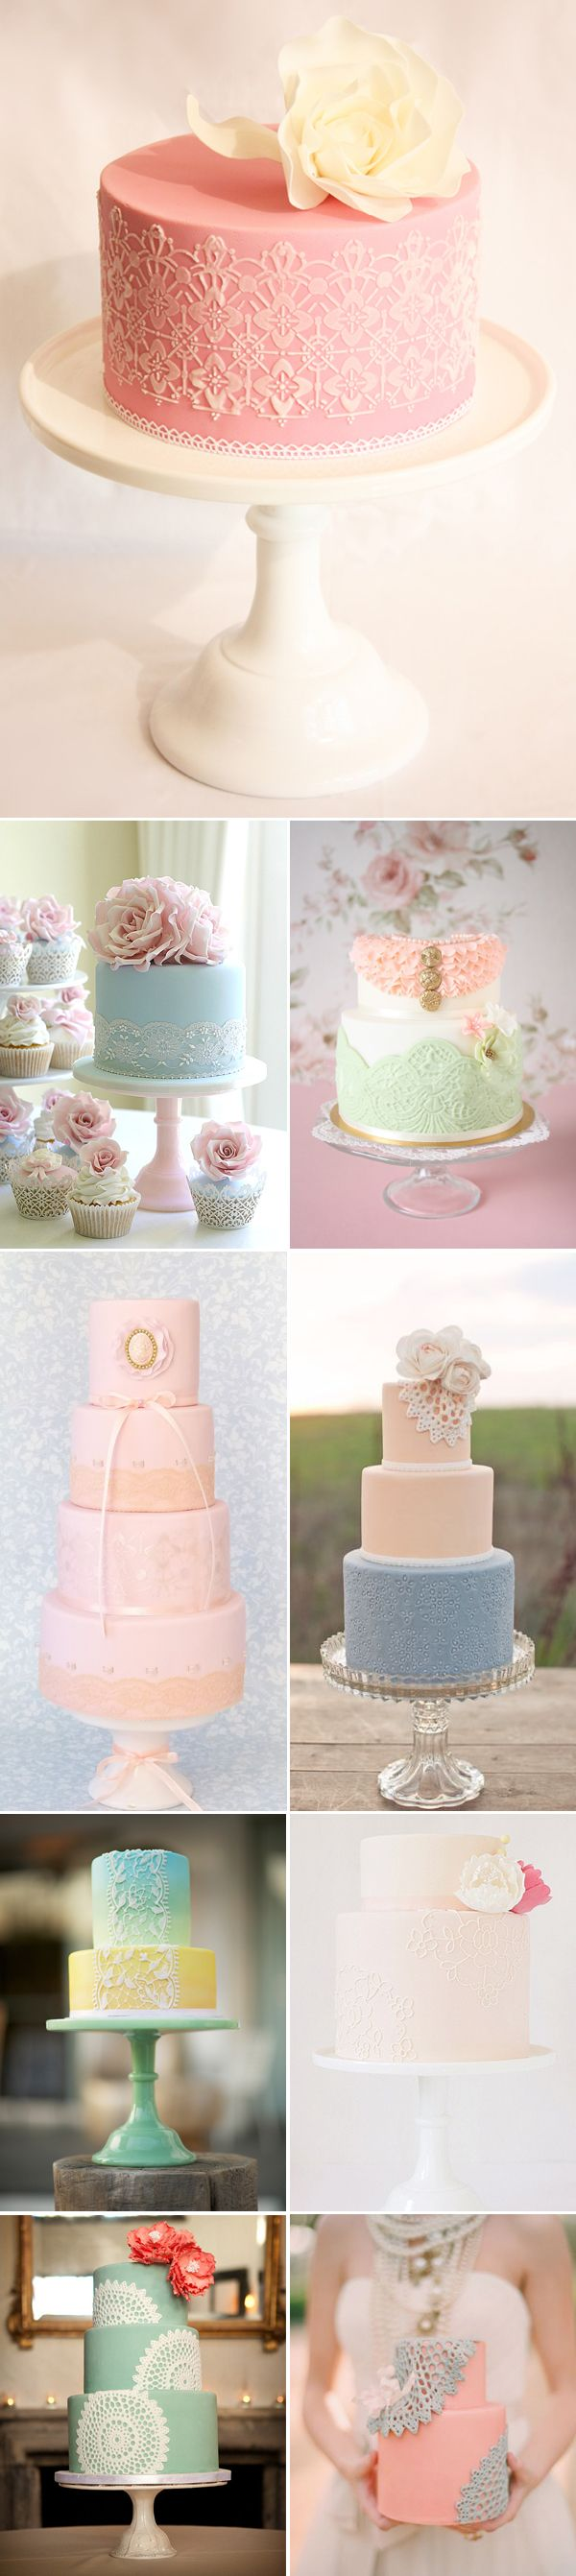 15 Romantic Laced Cakes - http://www.praisewedding.com/archives/2350